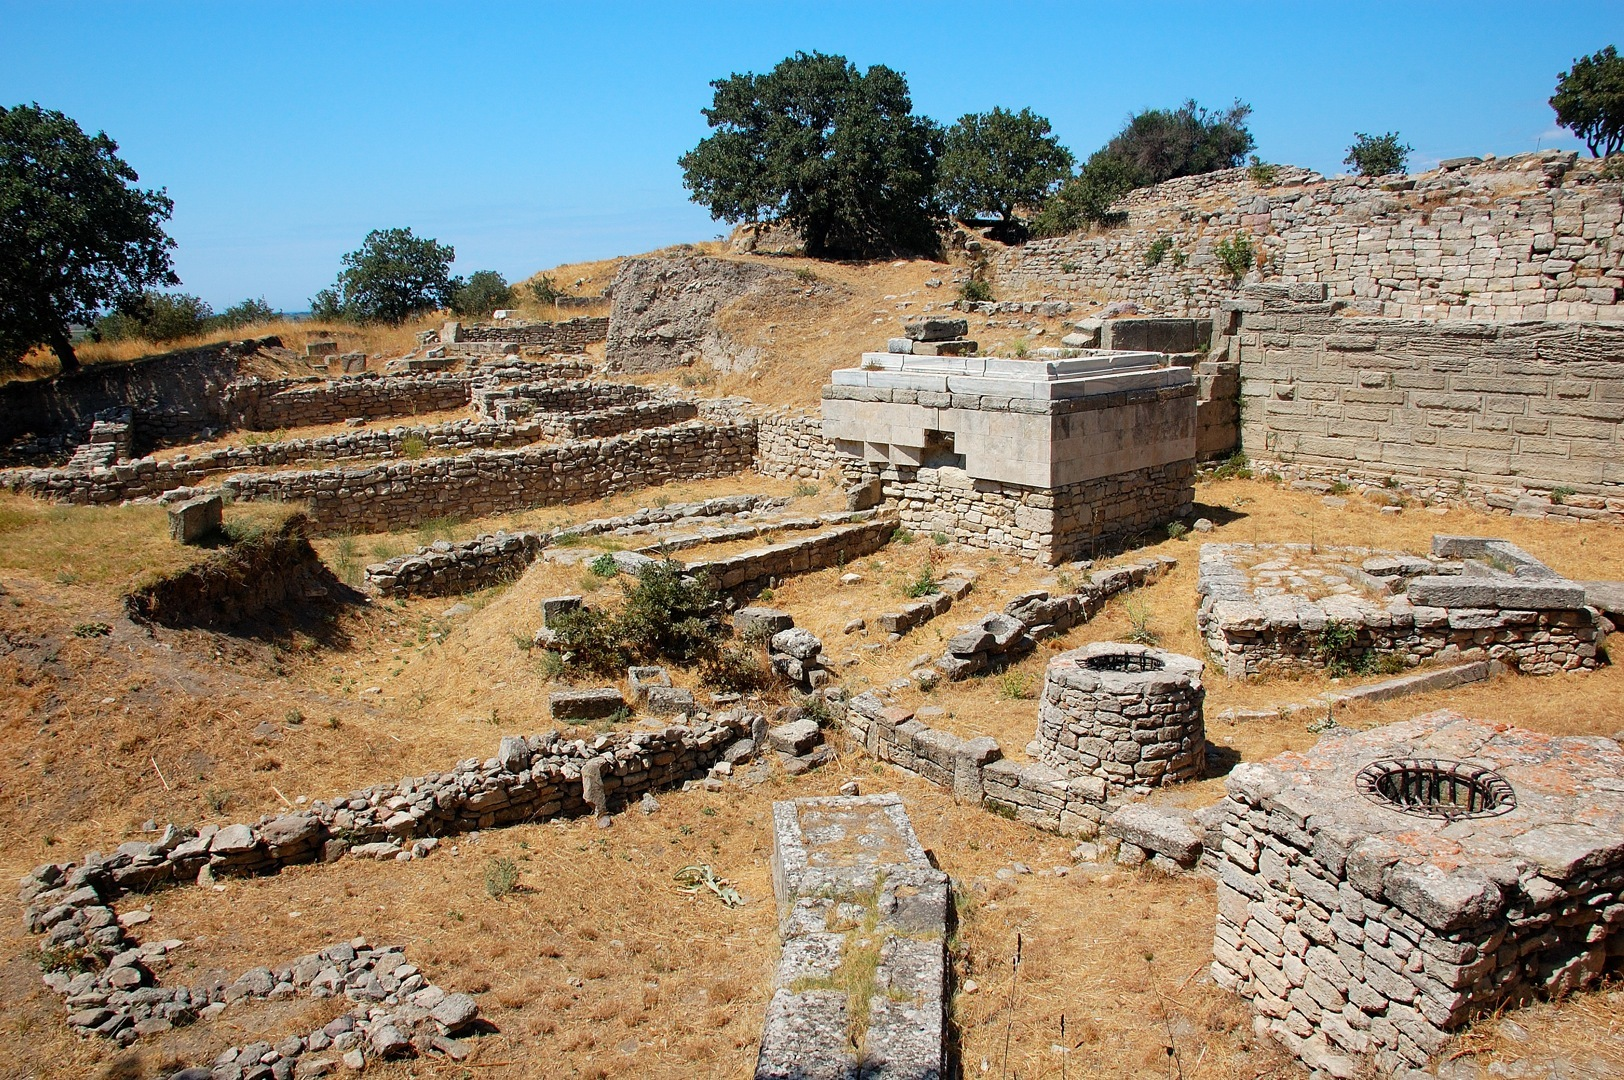 One of the richest cities of the ancient times and among the worldwide popular tourist attractions, Troy is located in the heart of nature in Çanakkale province. The ancient city of Troy was founded 5000 years ago and is now inscribed on the UNESCO World Heritage List.